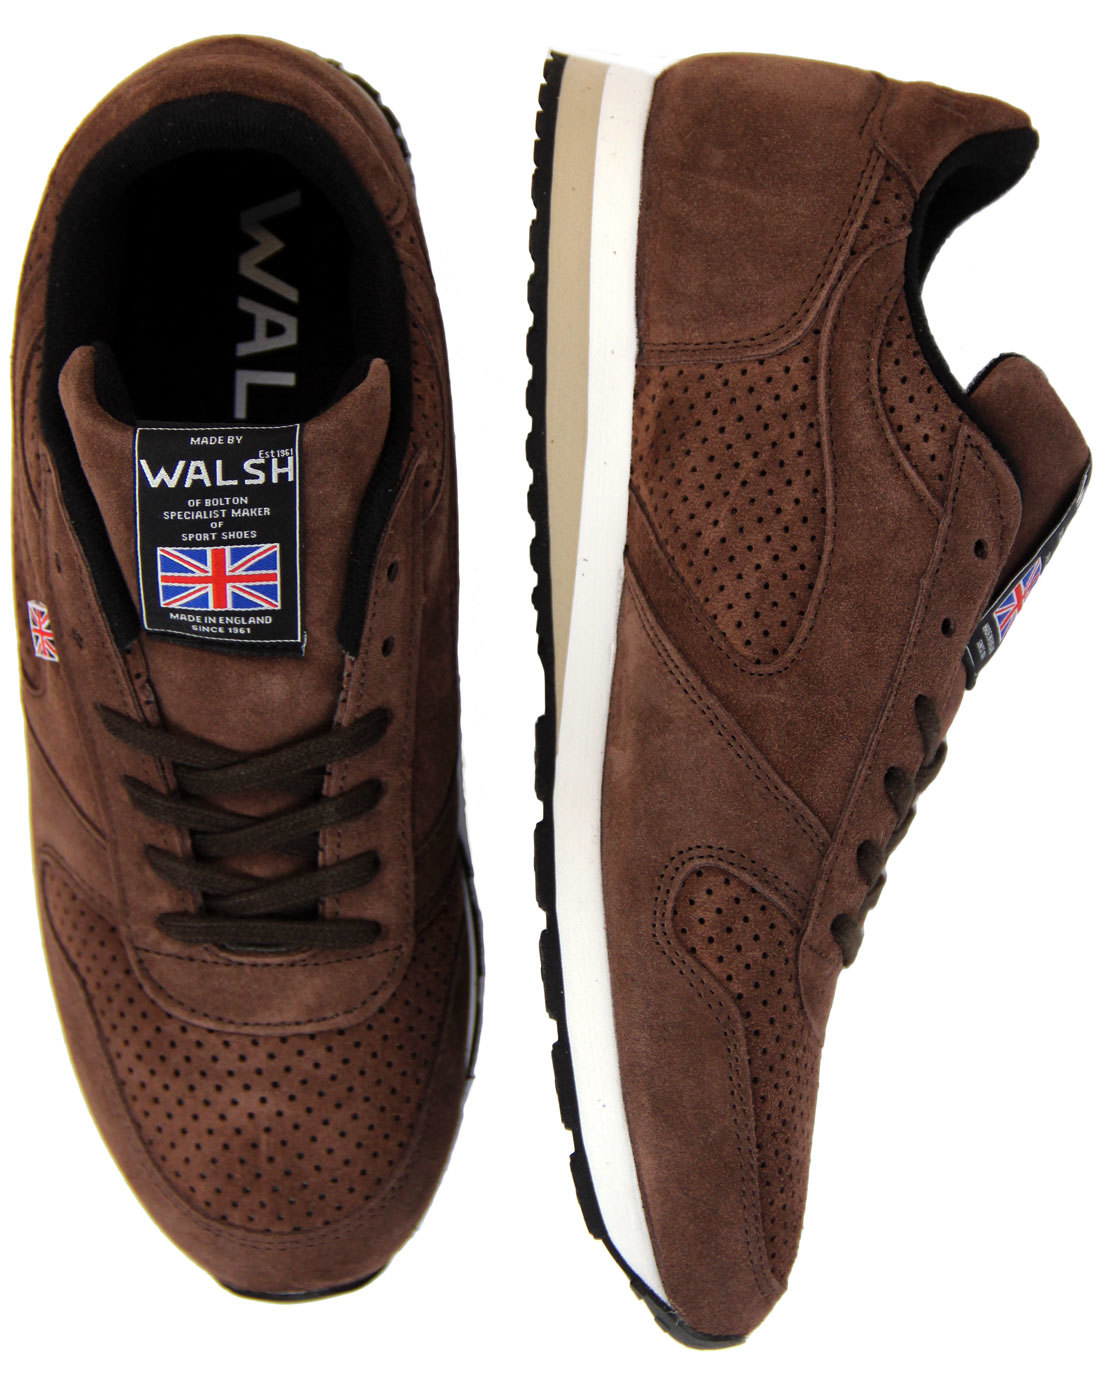 Seoul '88 WALSH Made In England Retro 80s Trainers